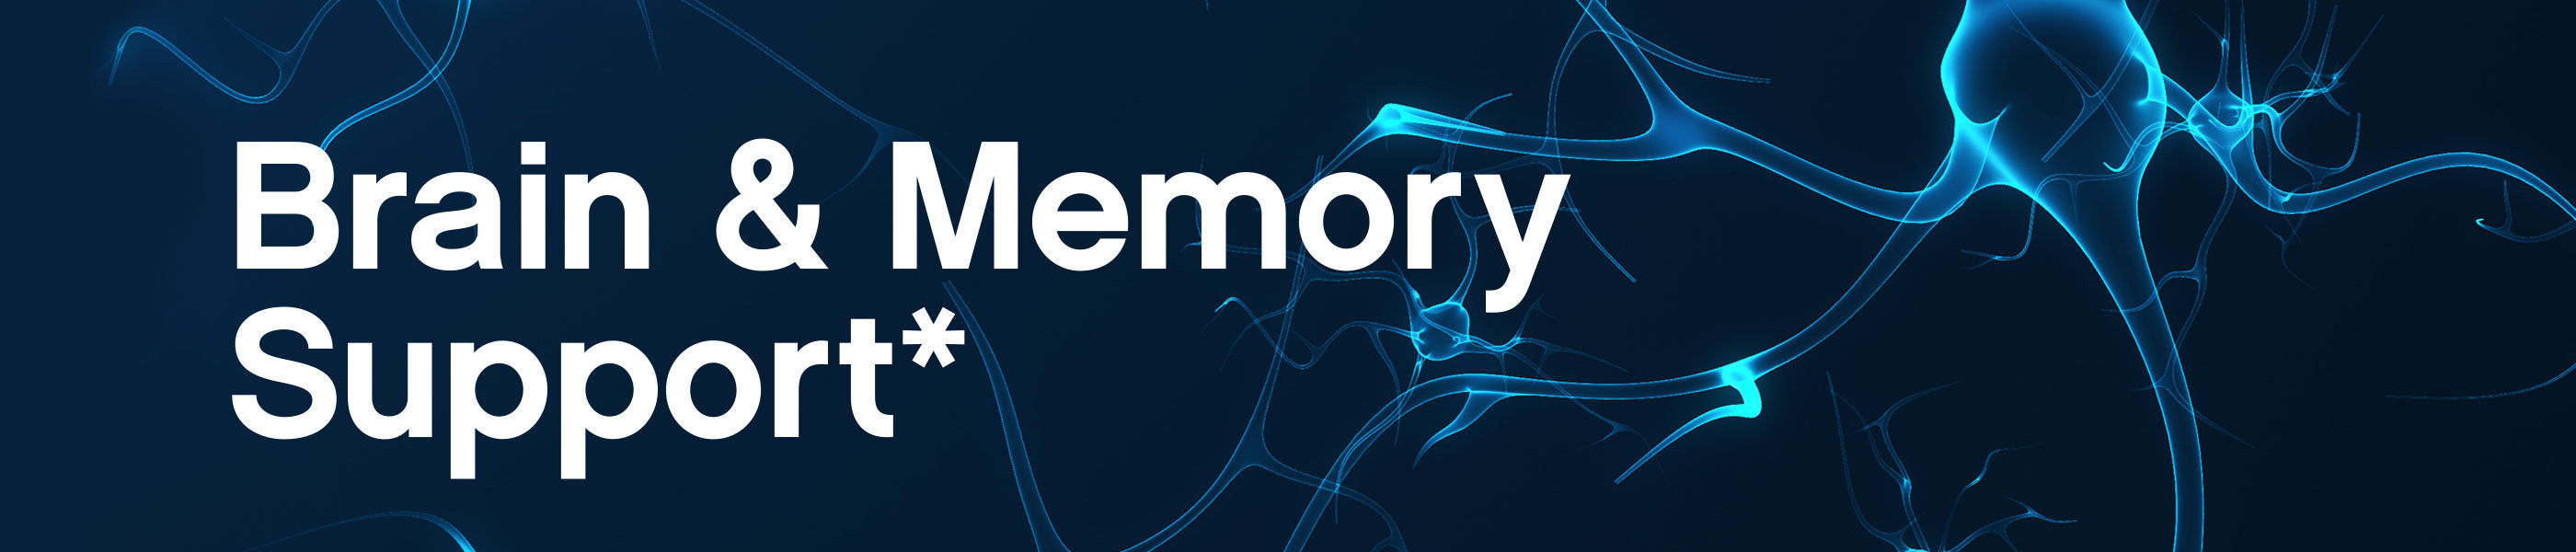 Brain & Memory Support header image